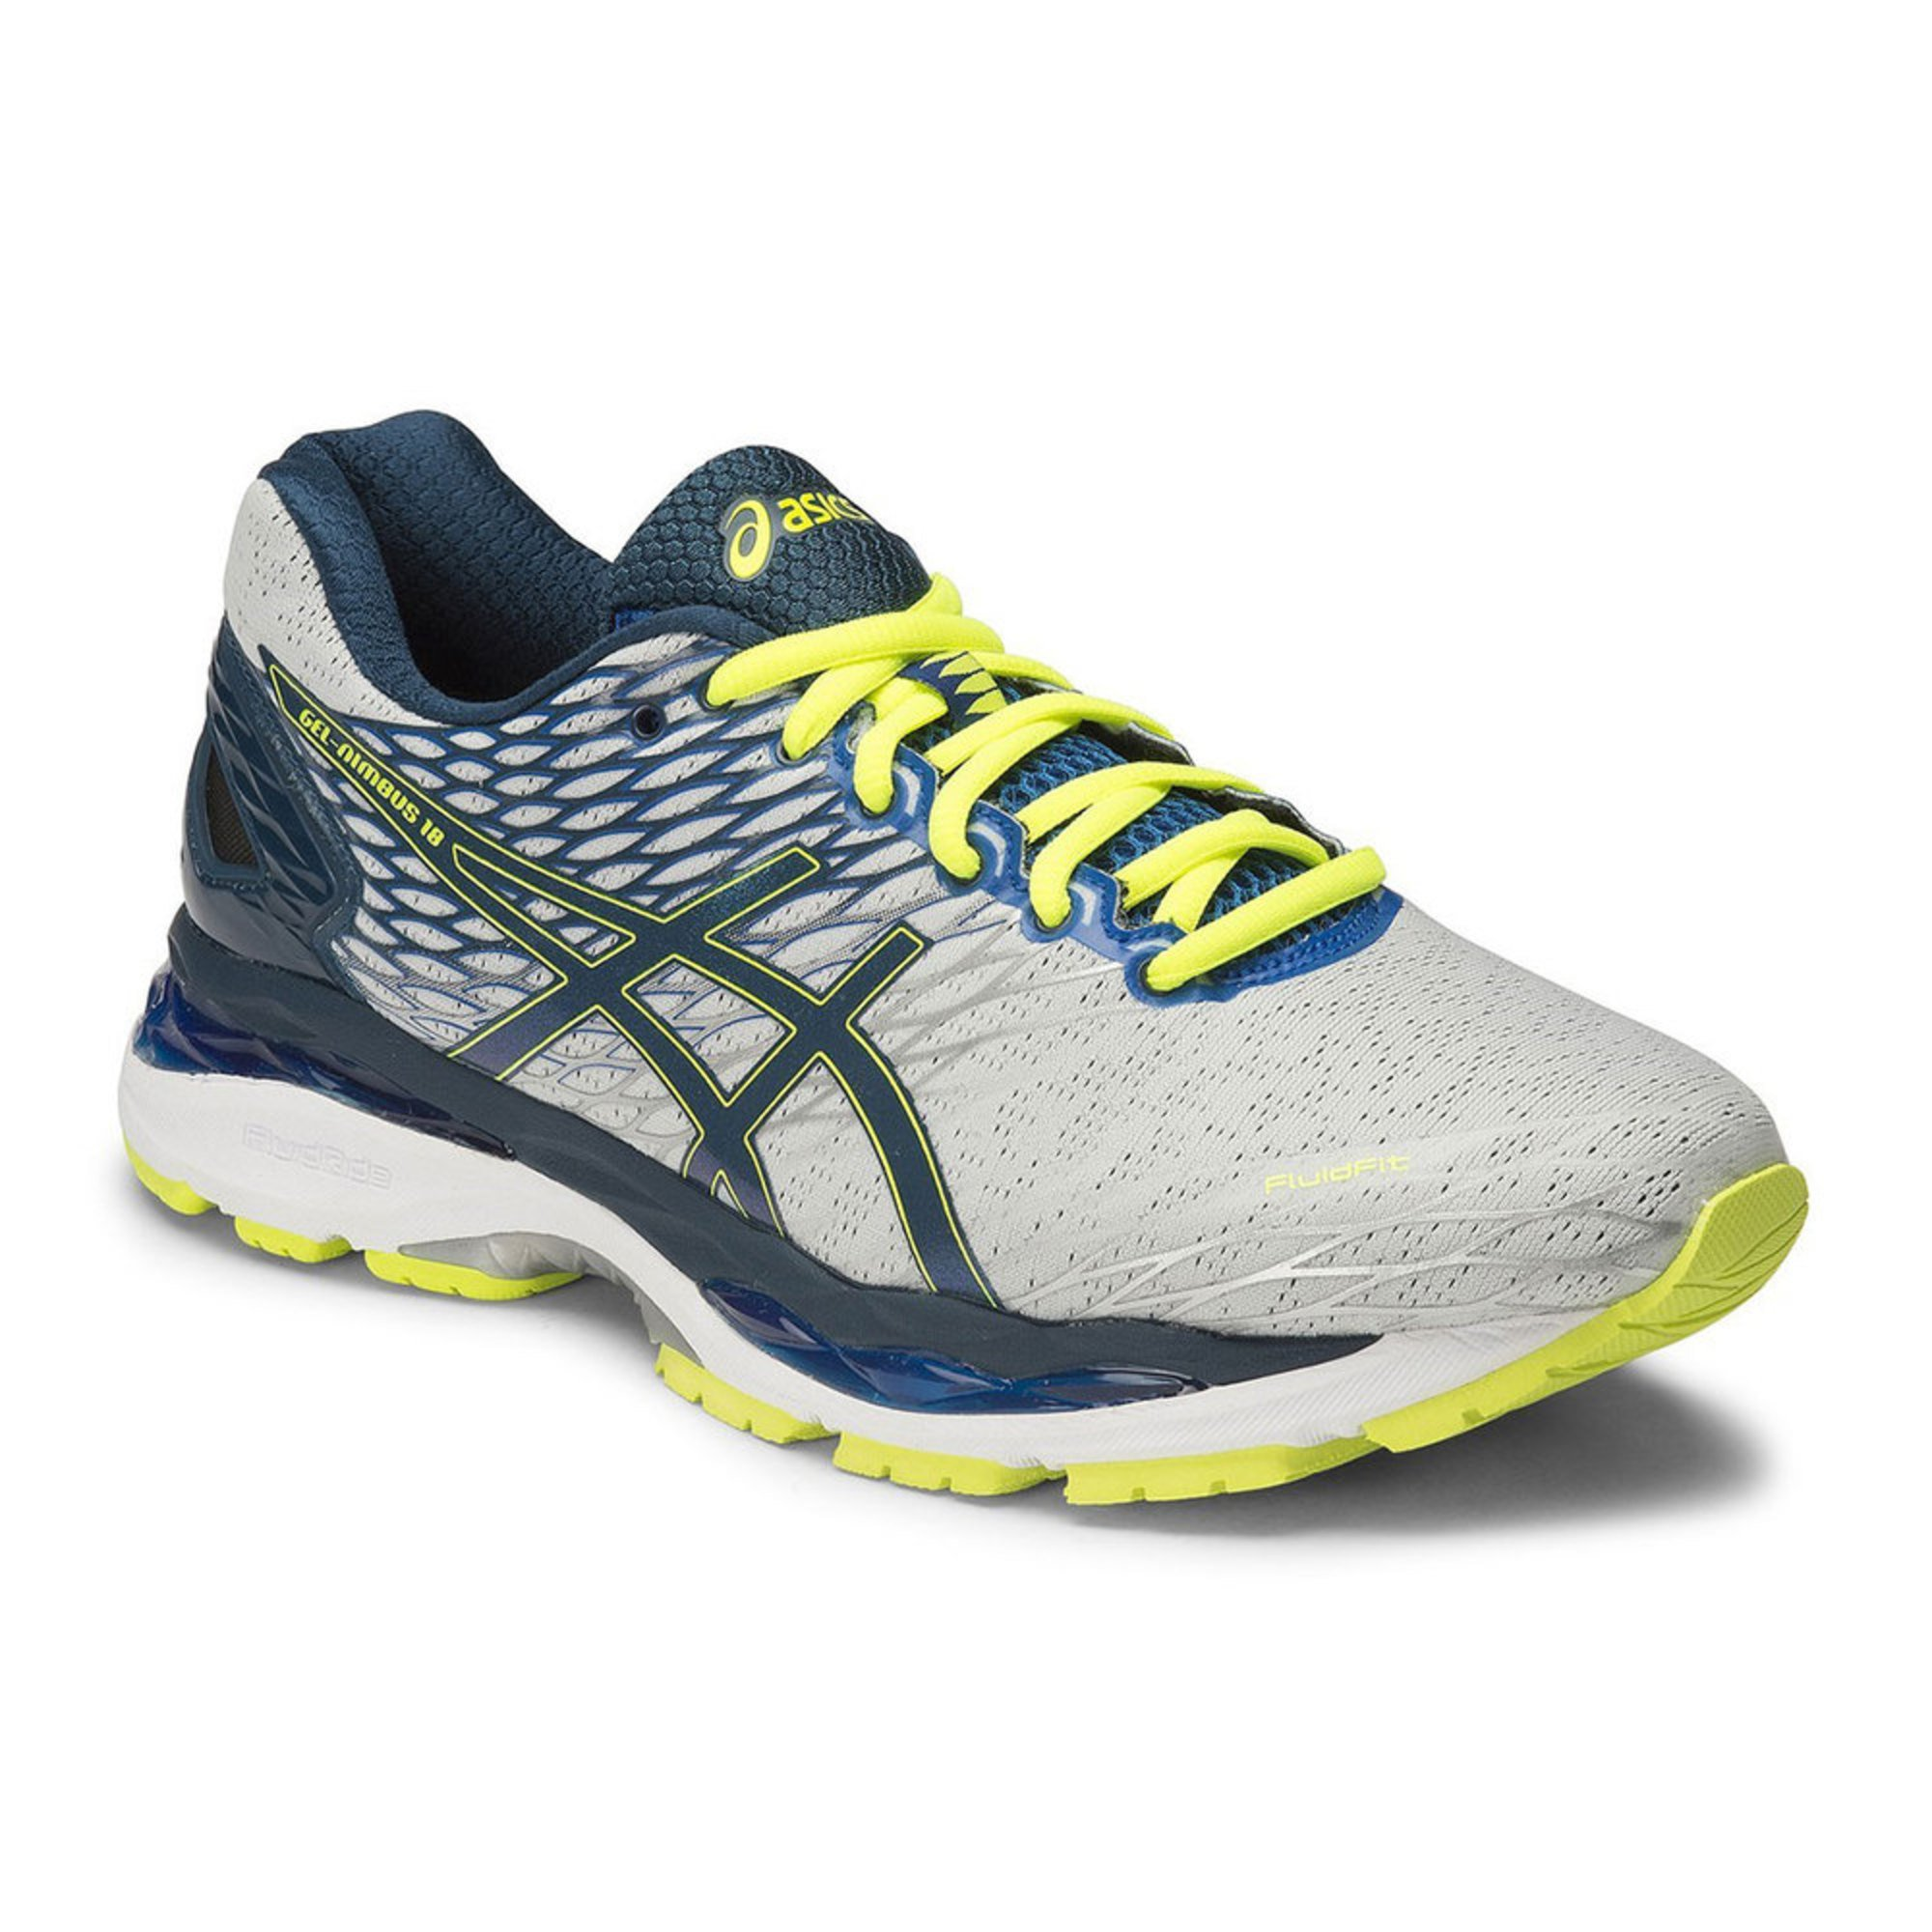 asics gel nimbus 18 men 39 s running shoe 2e silver black flash yellow shoes shop your navy. Black Bedroom Furniture Sets. Home Design Ideas